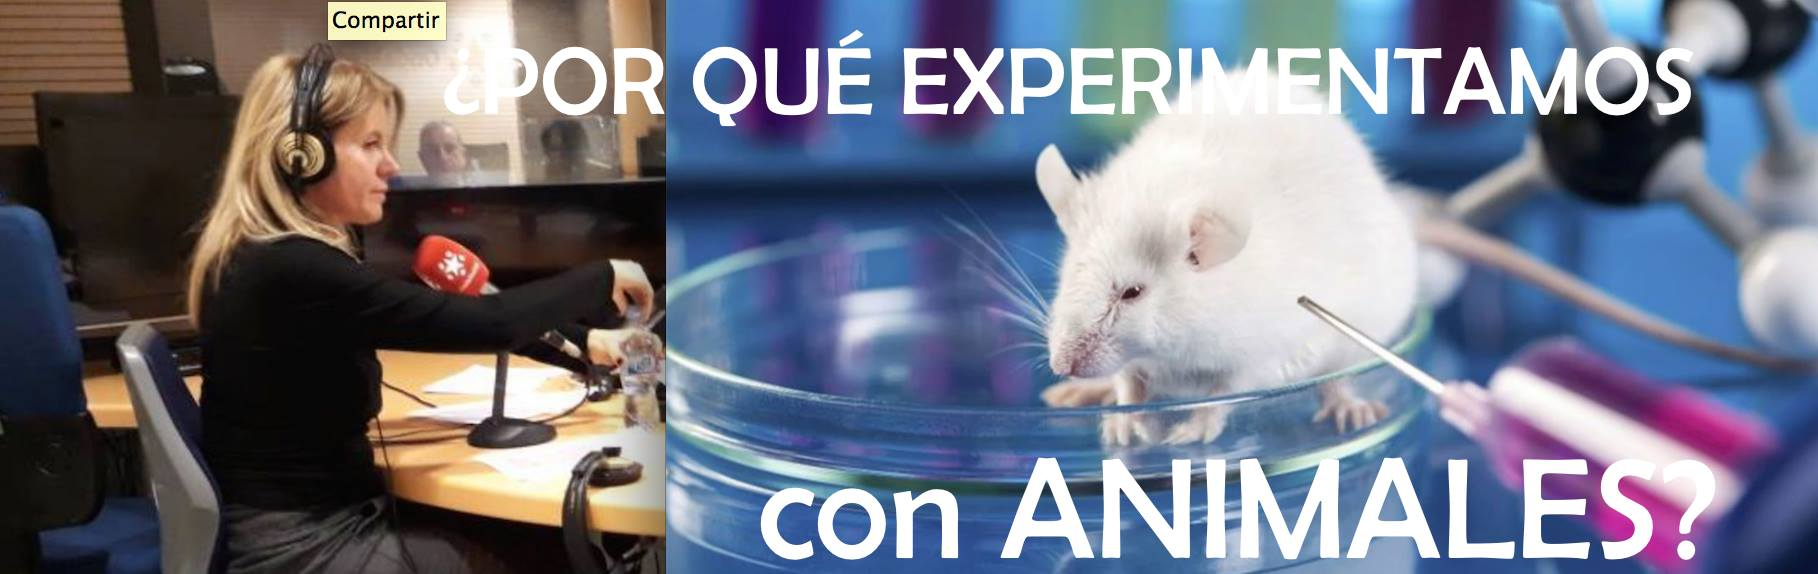 EXPERIMENTCON-ANIMALES